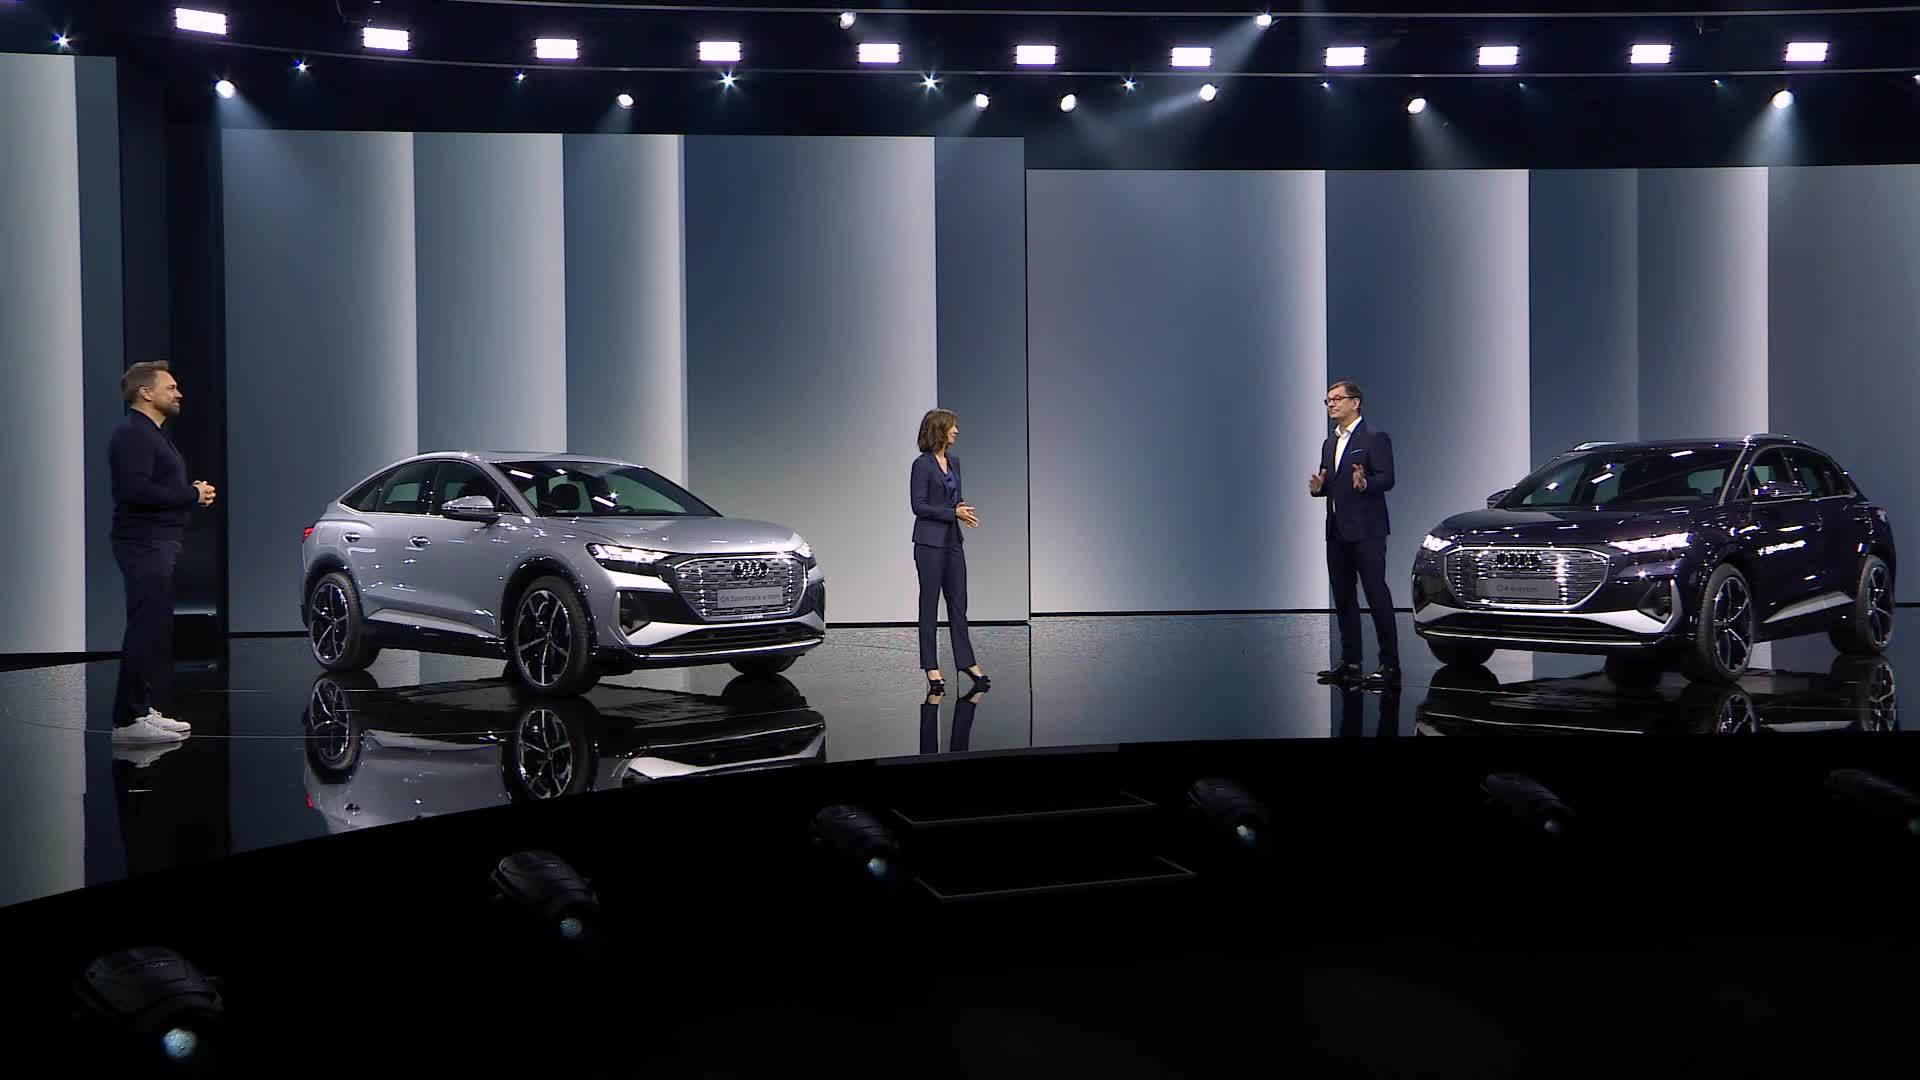 Celebration of Progress: Die Weltpremiere des Audi Q4 e-tron